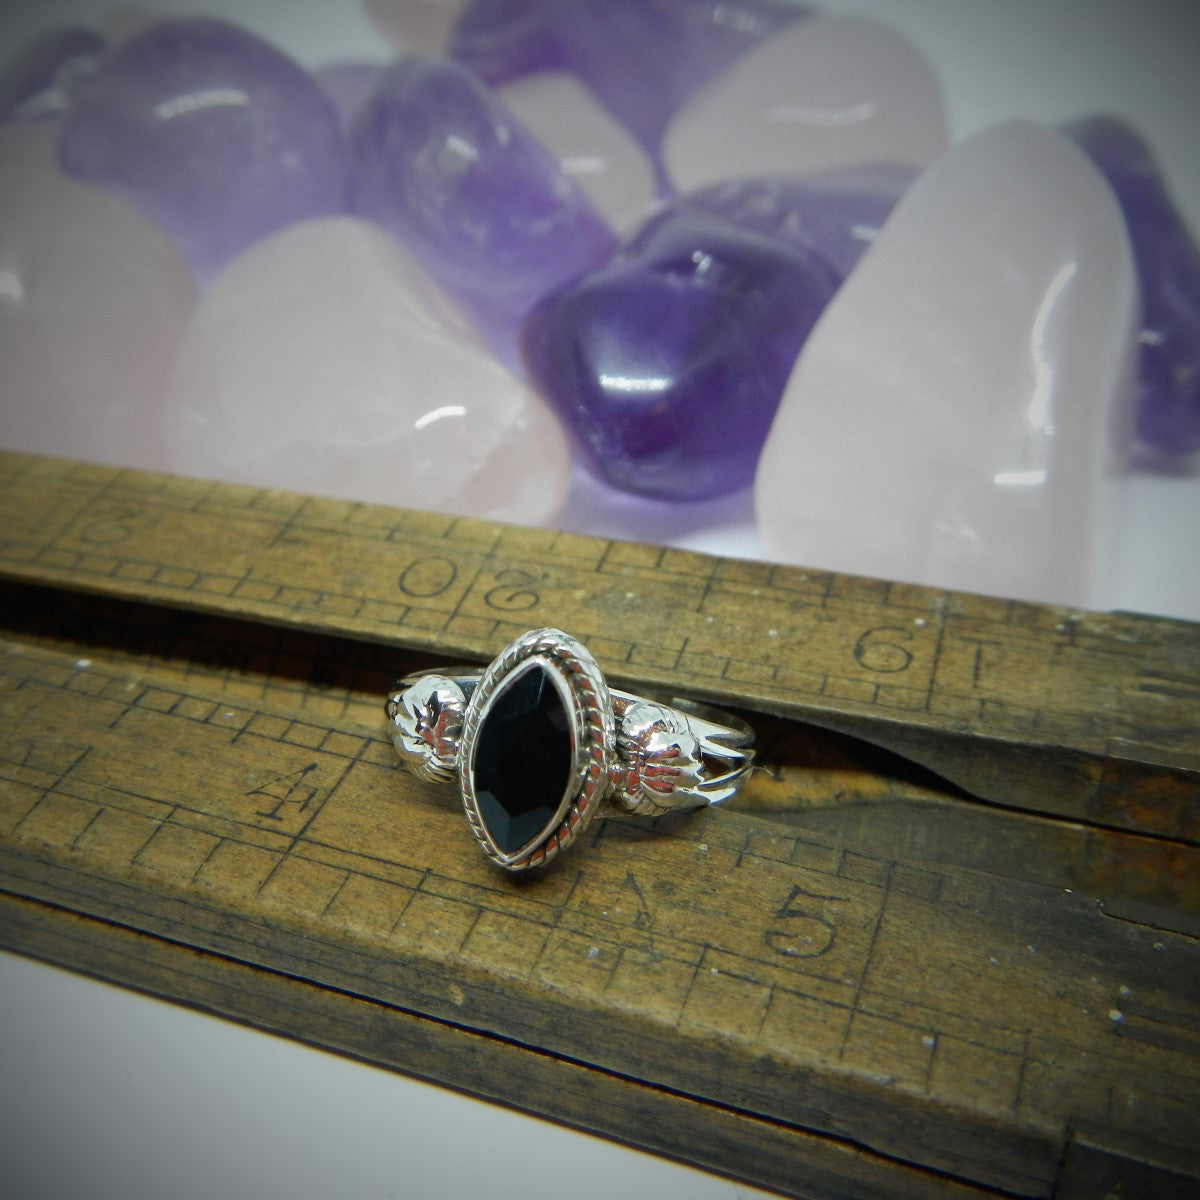 Size 9 Black Onyx & 925 Sterling Silver Ring.